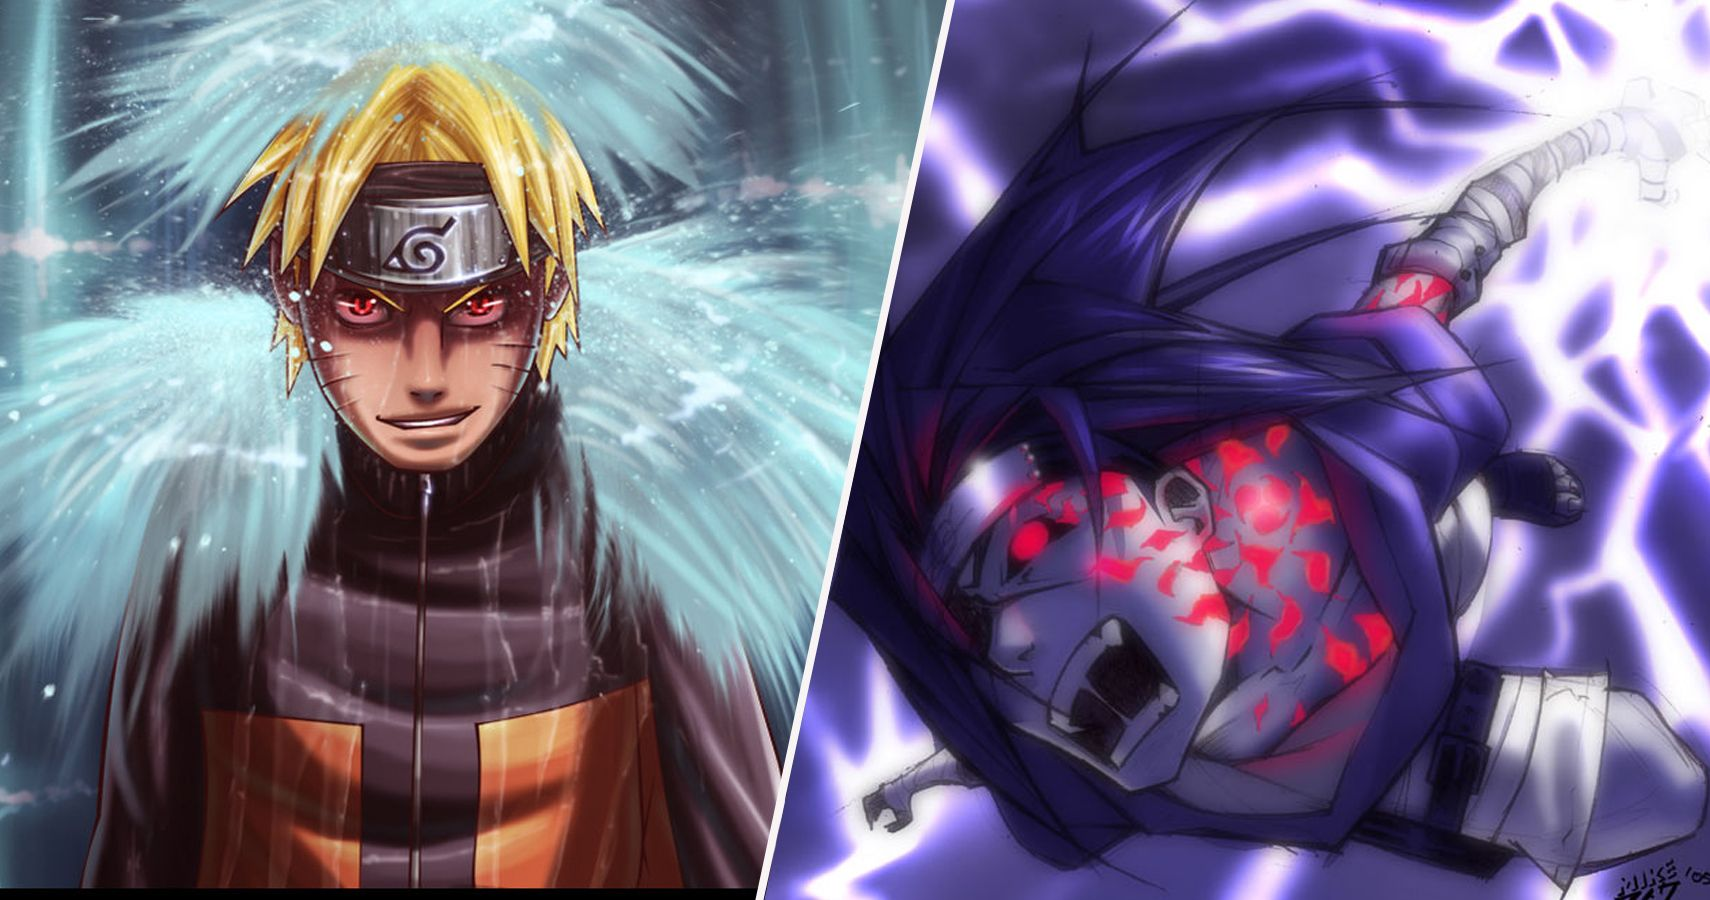 Naruto: 30 Heroes Reimagined As Villains | TheGamer